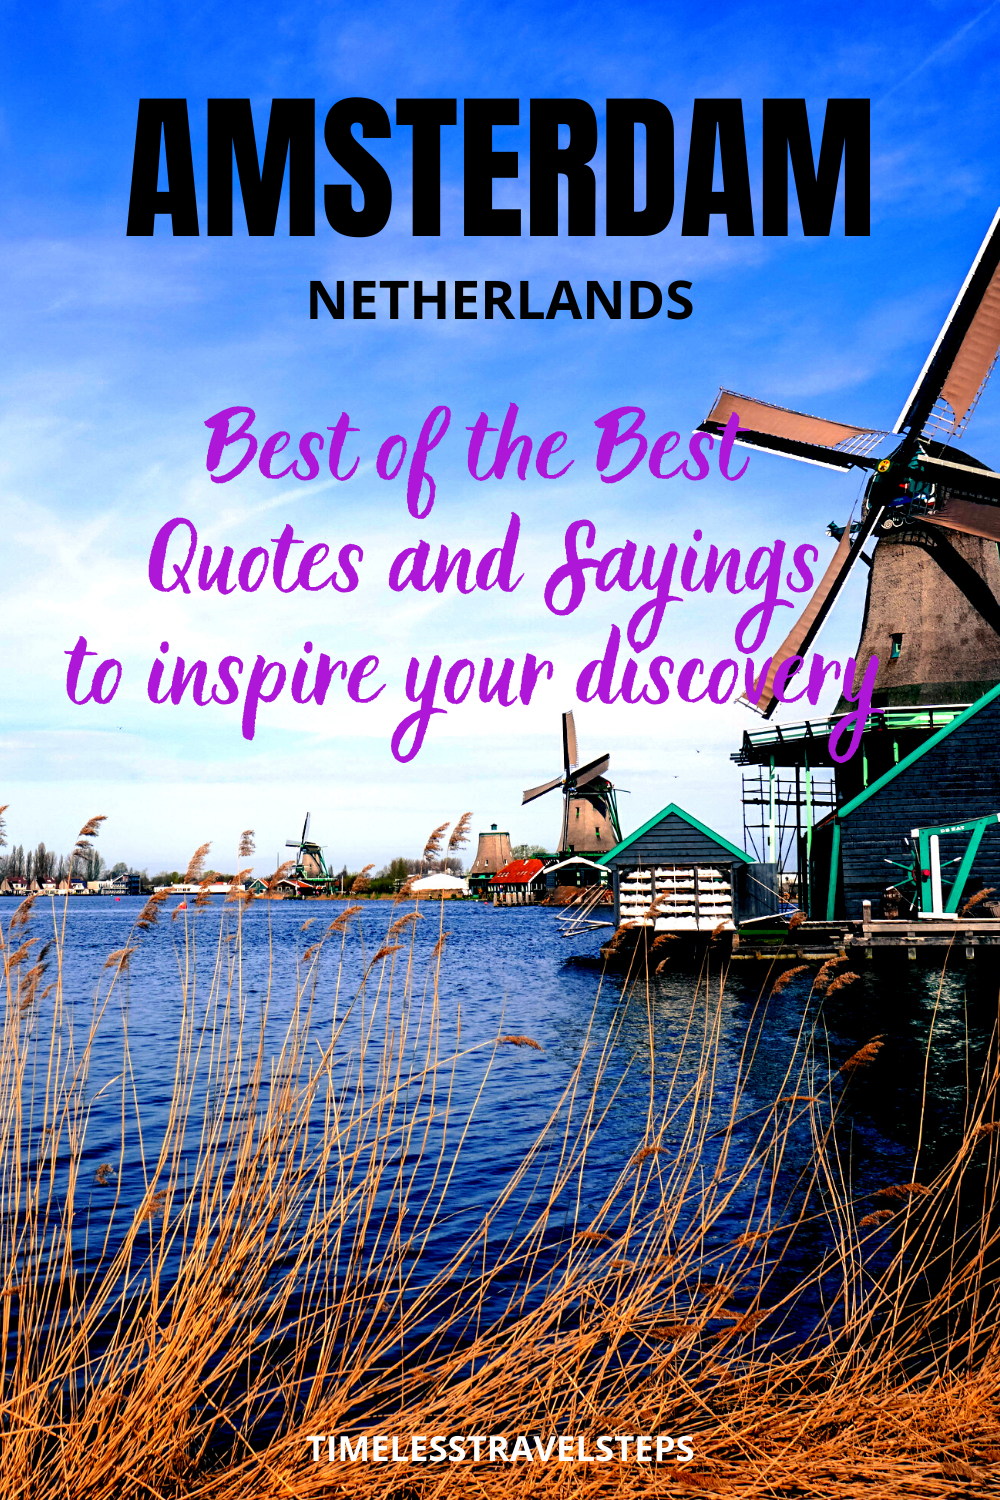 Over the years, the simplicity of  this picturesque city had inspired locals and travellers alike,  shaping each of their lives, one way or another.  Here are the best of the best 29 inspiring travel quotes and sayings on Amsterdam to inspire your journey | Amsterdam | Visit Amsterdam | Why visit Amsterdam | Venice of the North | City of Culture and Acceptance | City of Freedom | Sin City of Europe | via @GGeorgina_timelesstravelsteps/